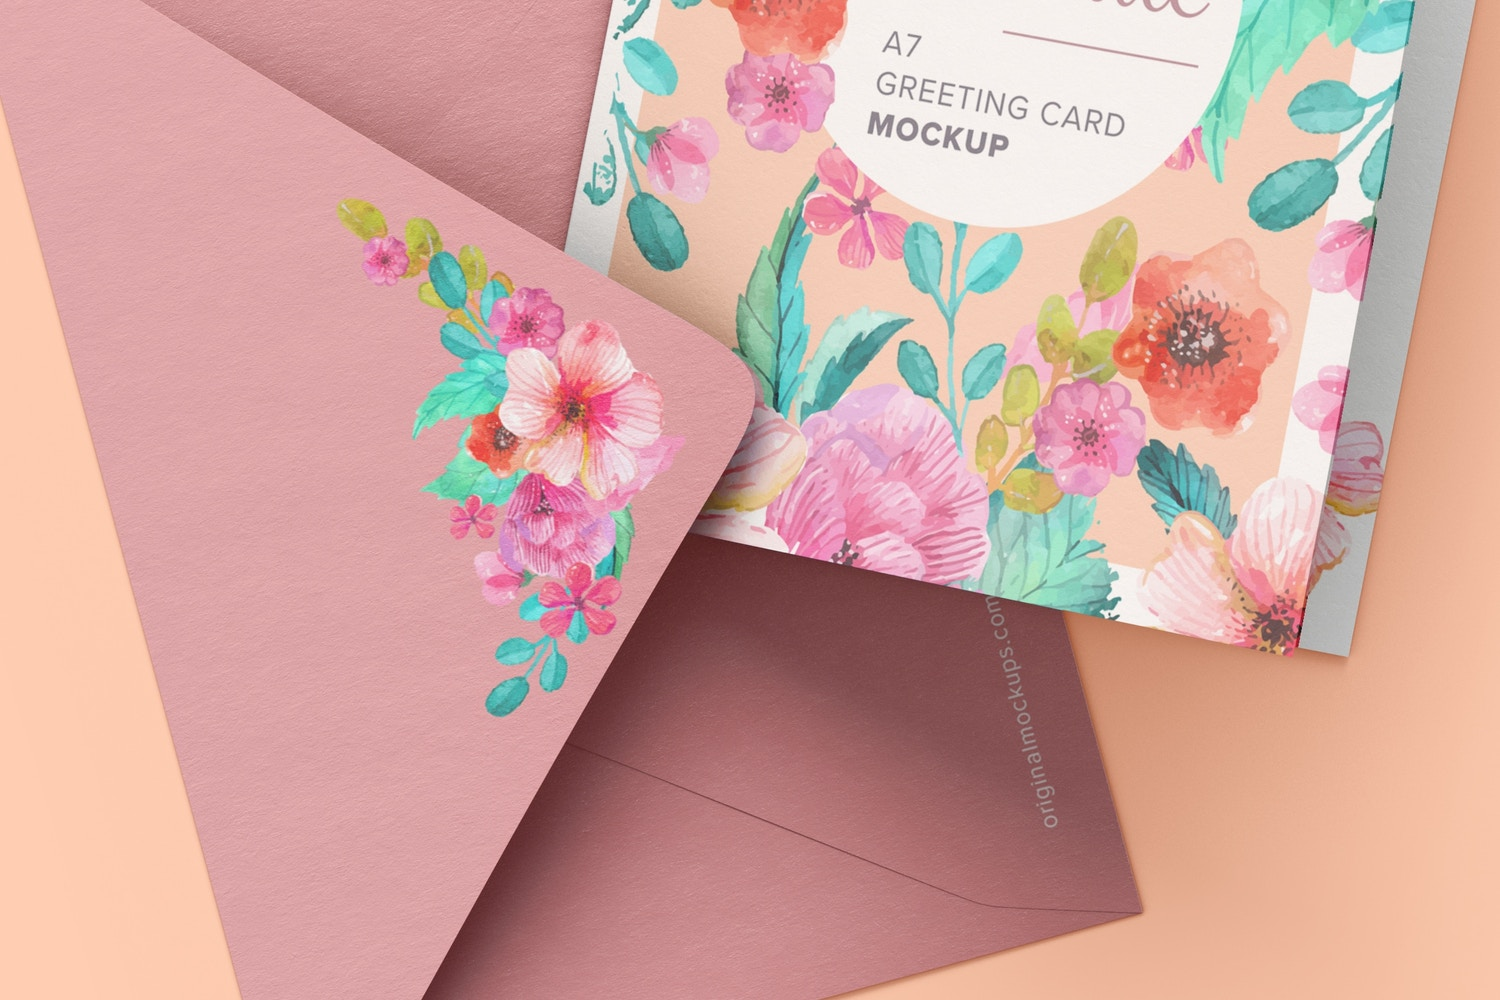 Watch the textured detail on the envelope. Get very realistic details with this mockup.